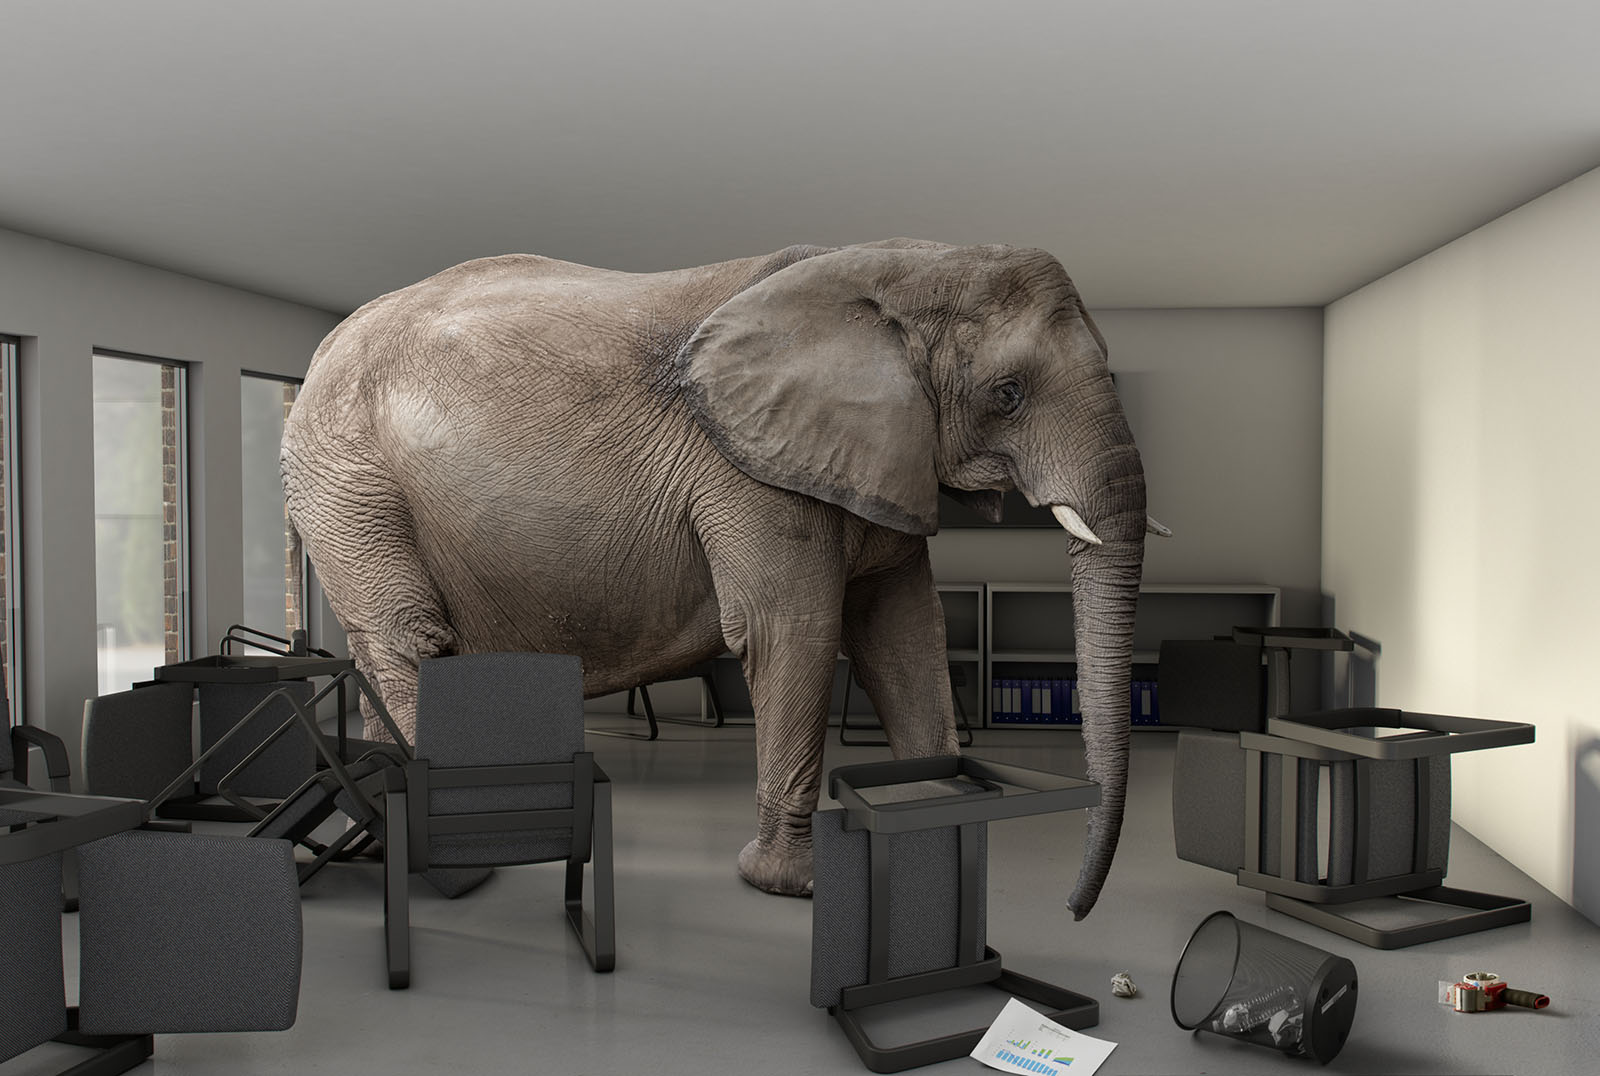 An elephant inside a business meeting room.